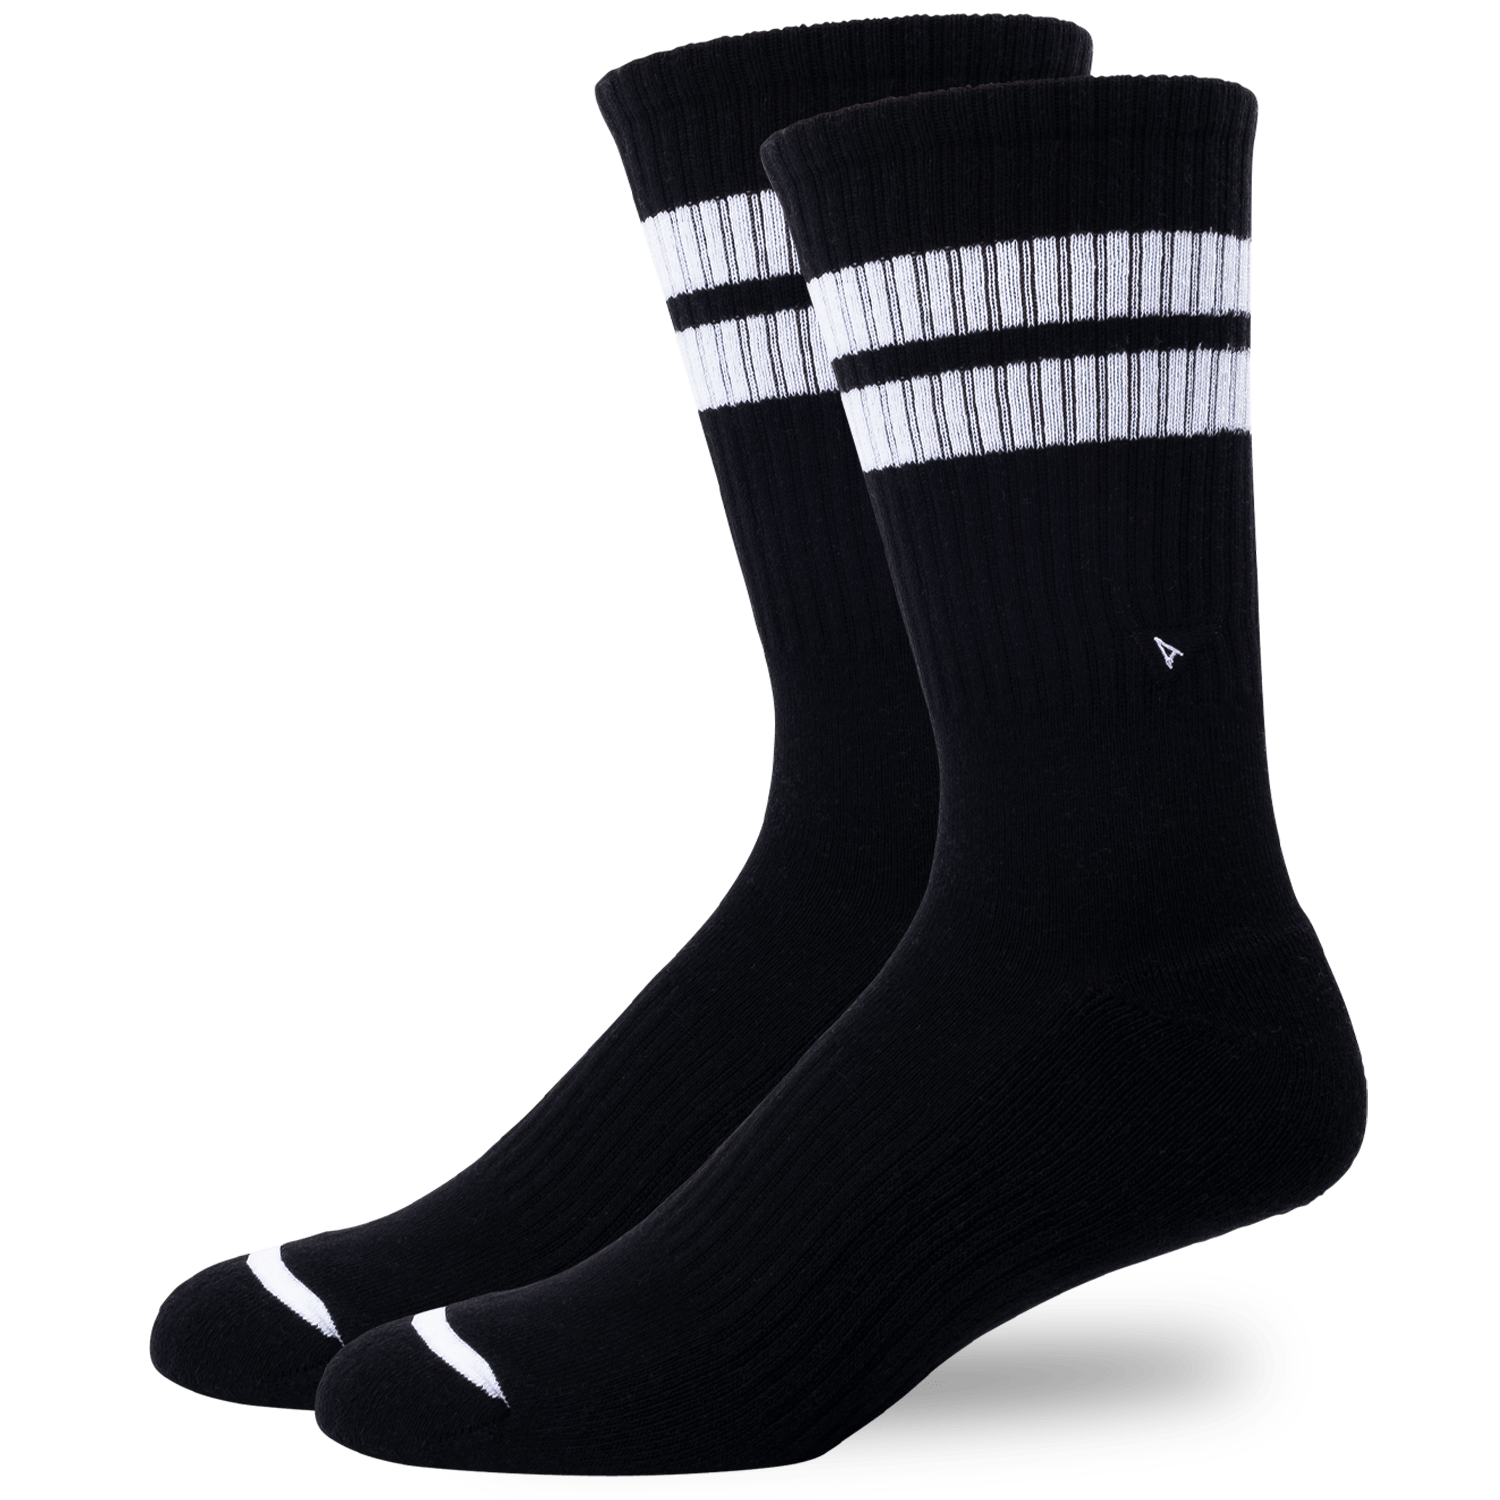 Arvin Goods Crew Sock Long - Black Noir